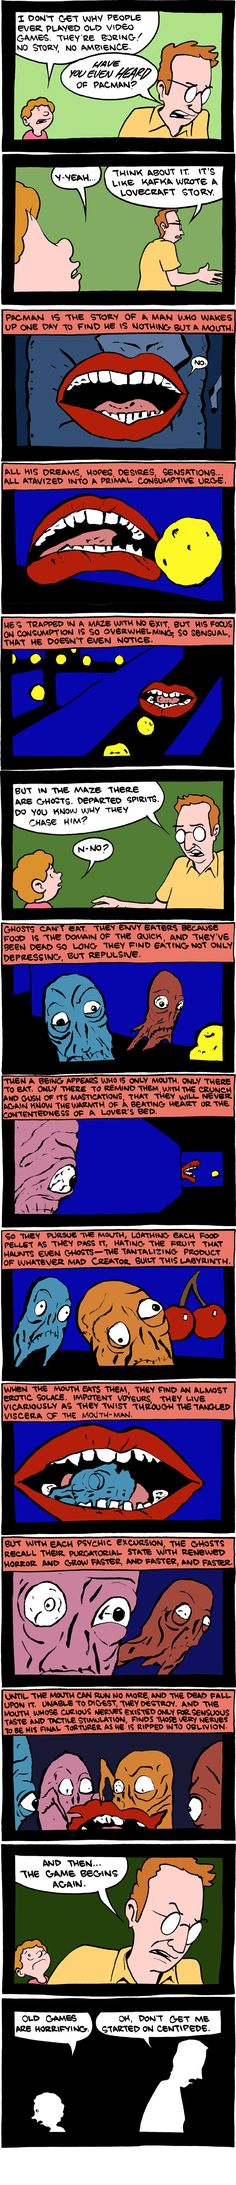 Old Video Games are Horrifying Comic: Pac-Man as a Kafkaesque Nightmare Pac Man, Hp Lovecraft, Science Fiction, Smbc Comics, Old Video, Old Games, Funny Comics, Comic Strips, The Funny